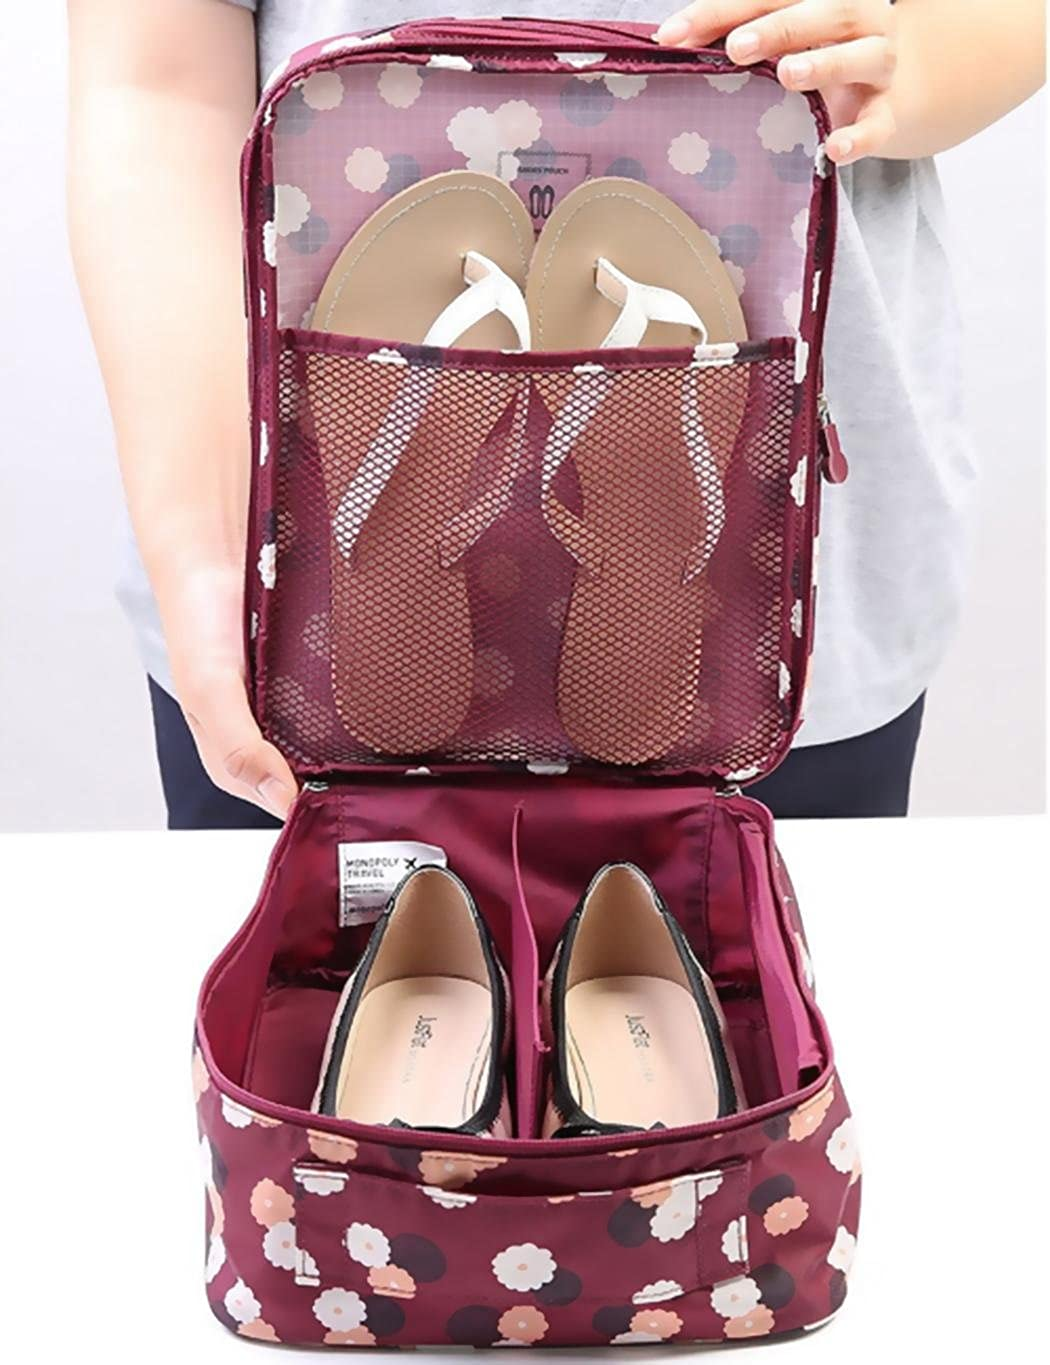 Corgy Shoe Bags for Travel Portable Thick Nylon Waterproof Fabric with Zipper Travel Shoe Tote Bags